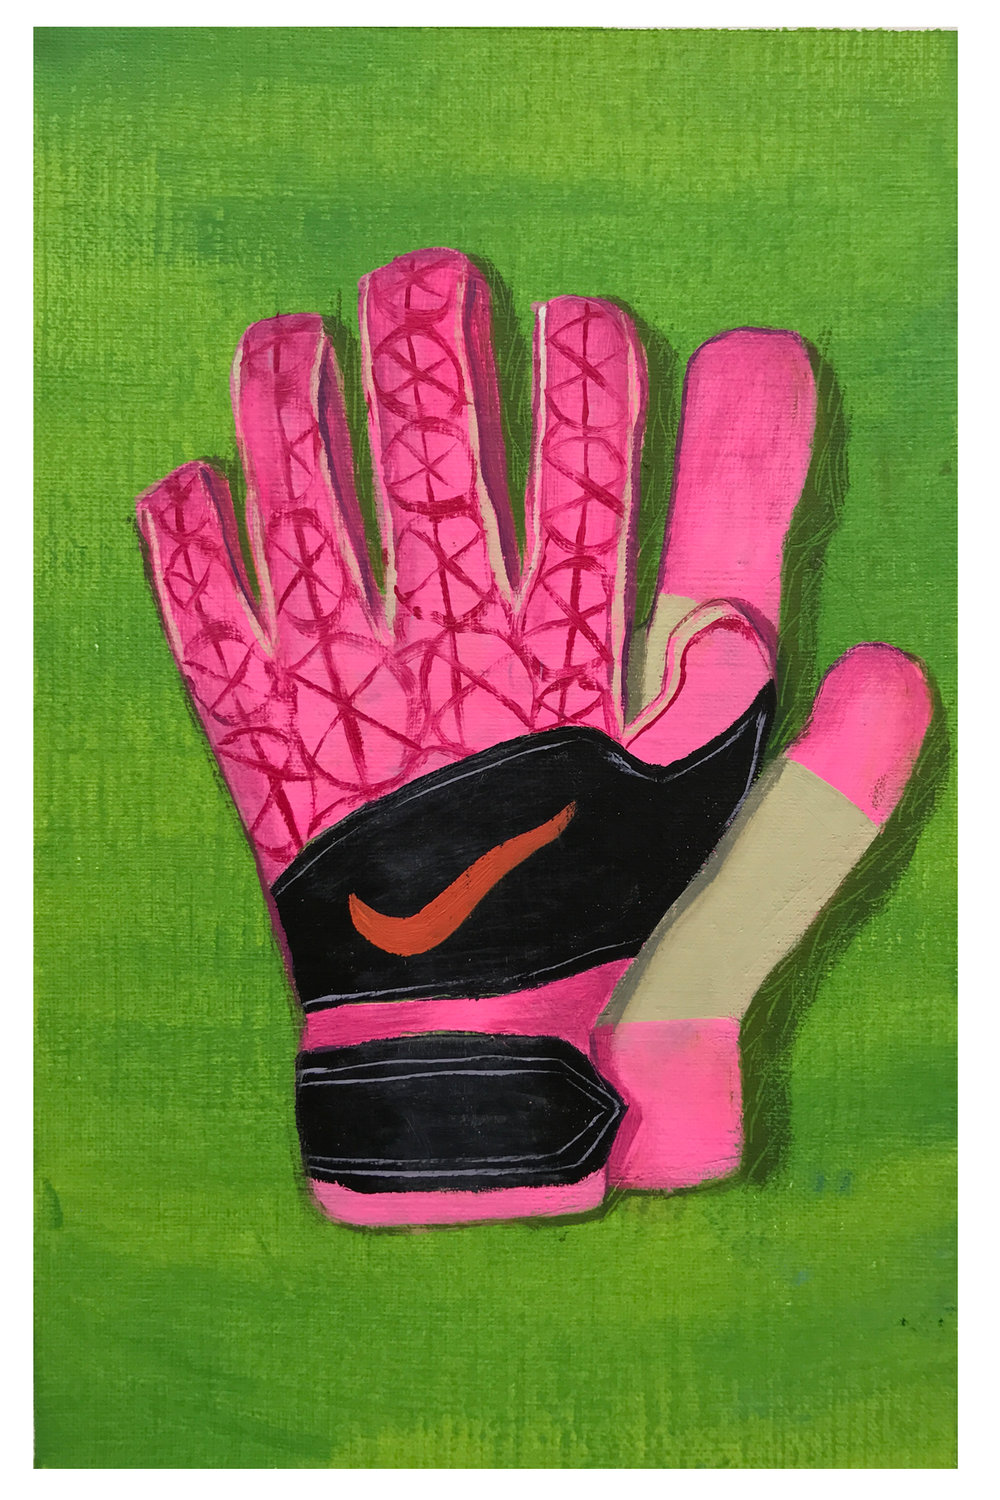 Guantes, 9 x 6 in.